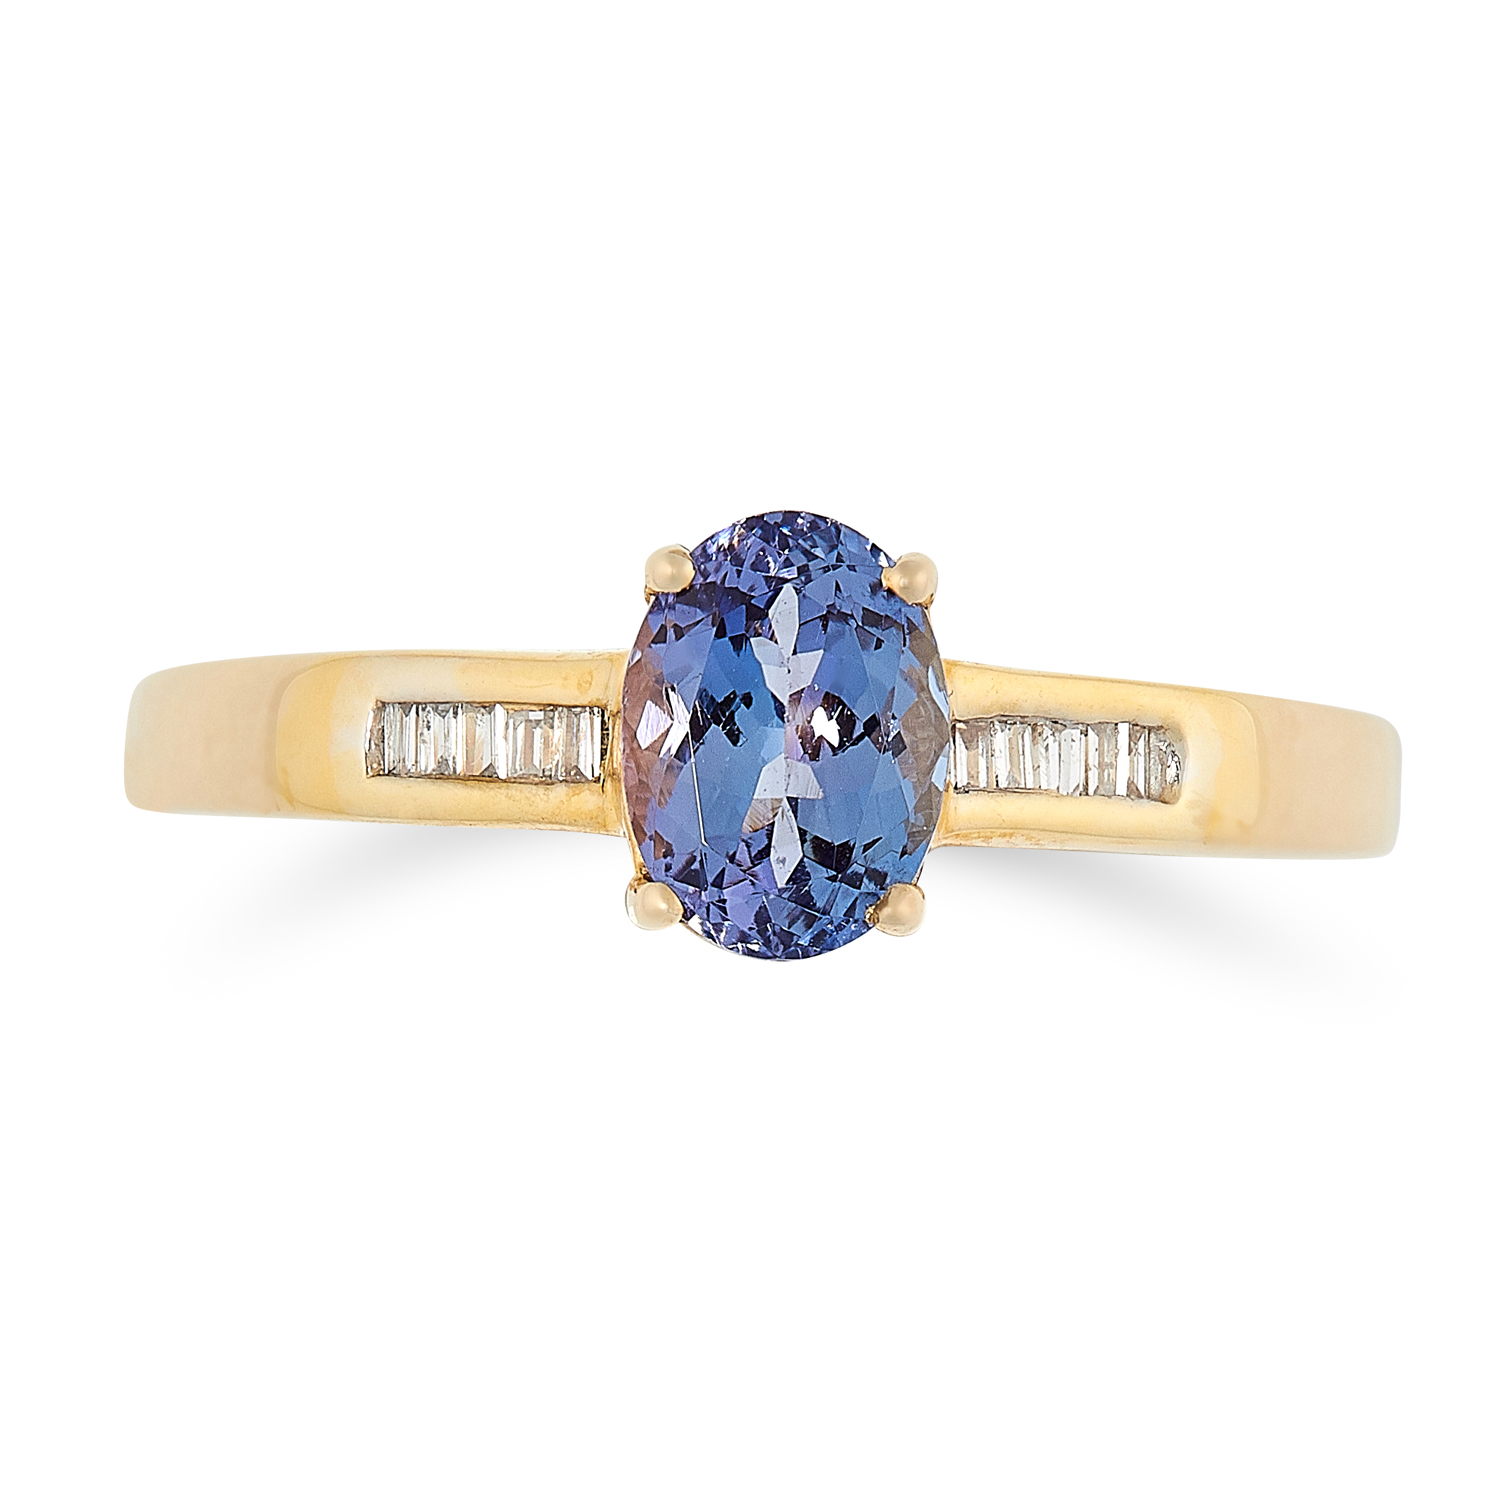 A SET OF THREE GEMSET DRESS RINGS one is set with an oval cut tanzanite between a row of baguette